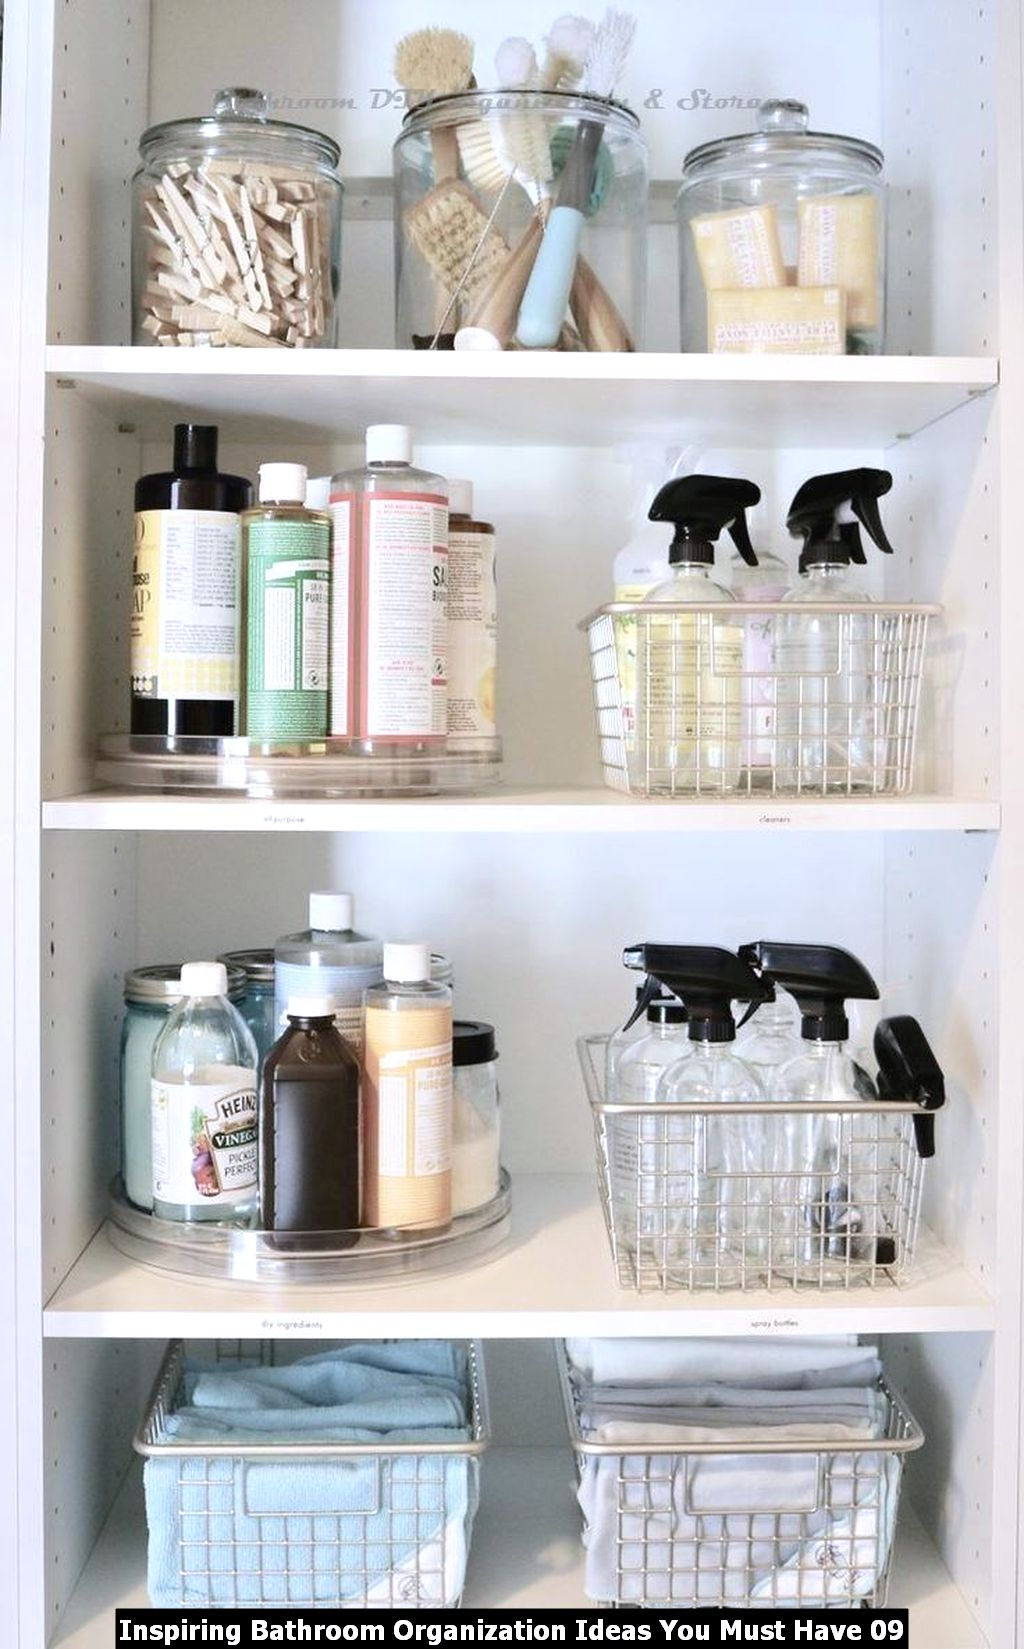 Inspiring Bathroom Organization Ideas You Must Have 09